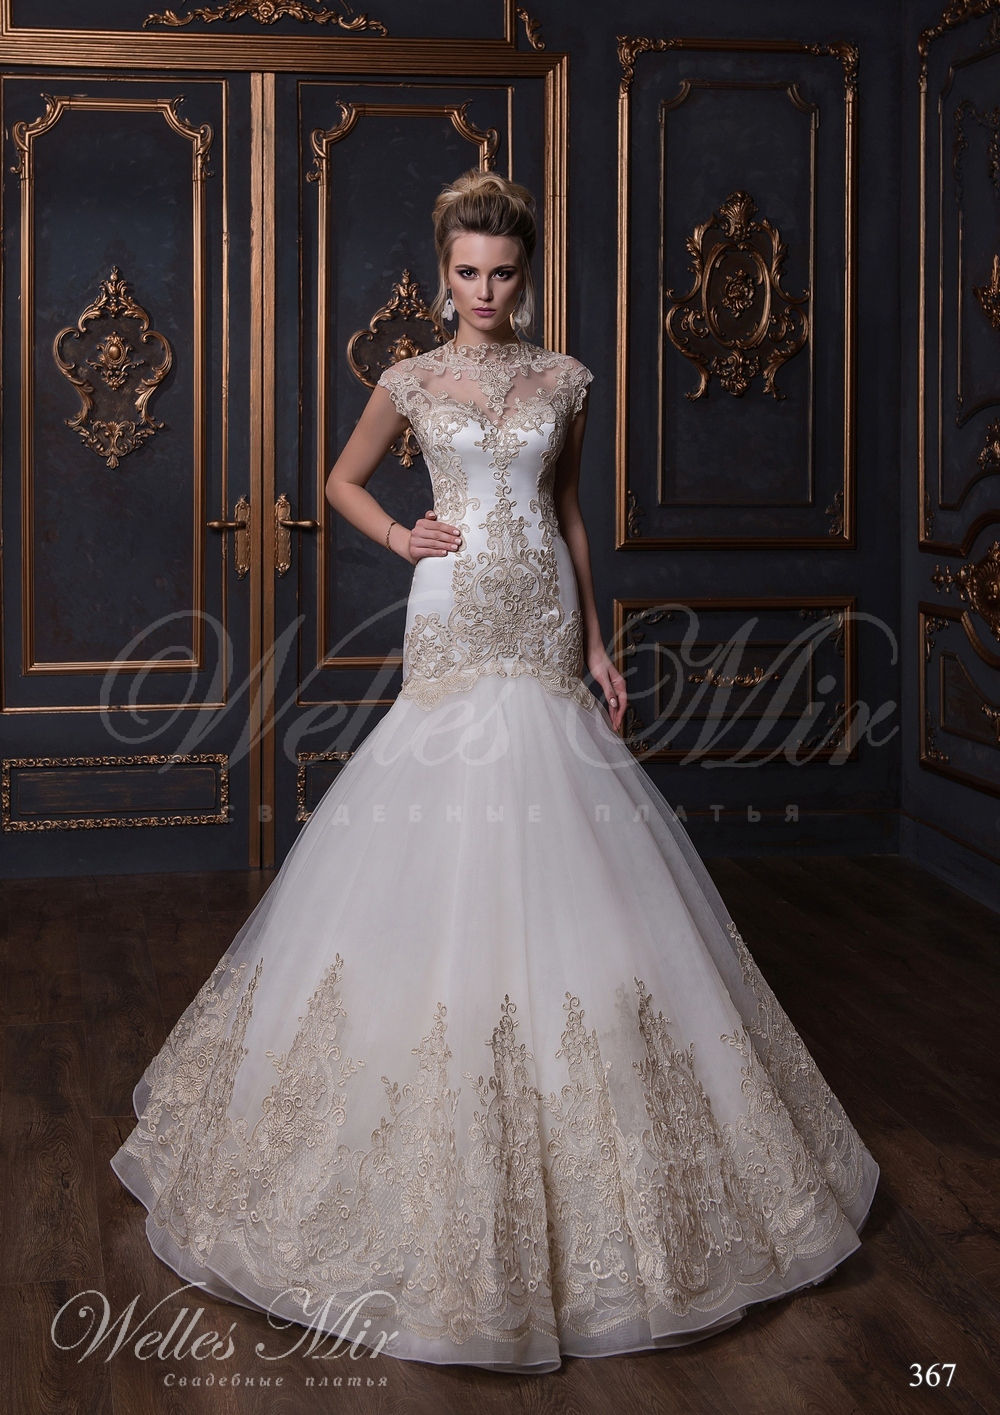 Wedding dress made of chiffon with embroidery 367